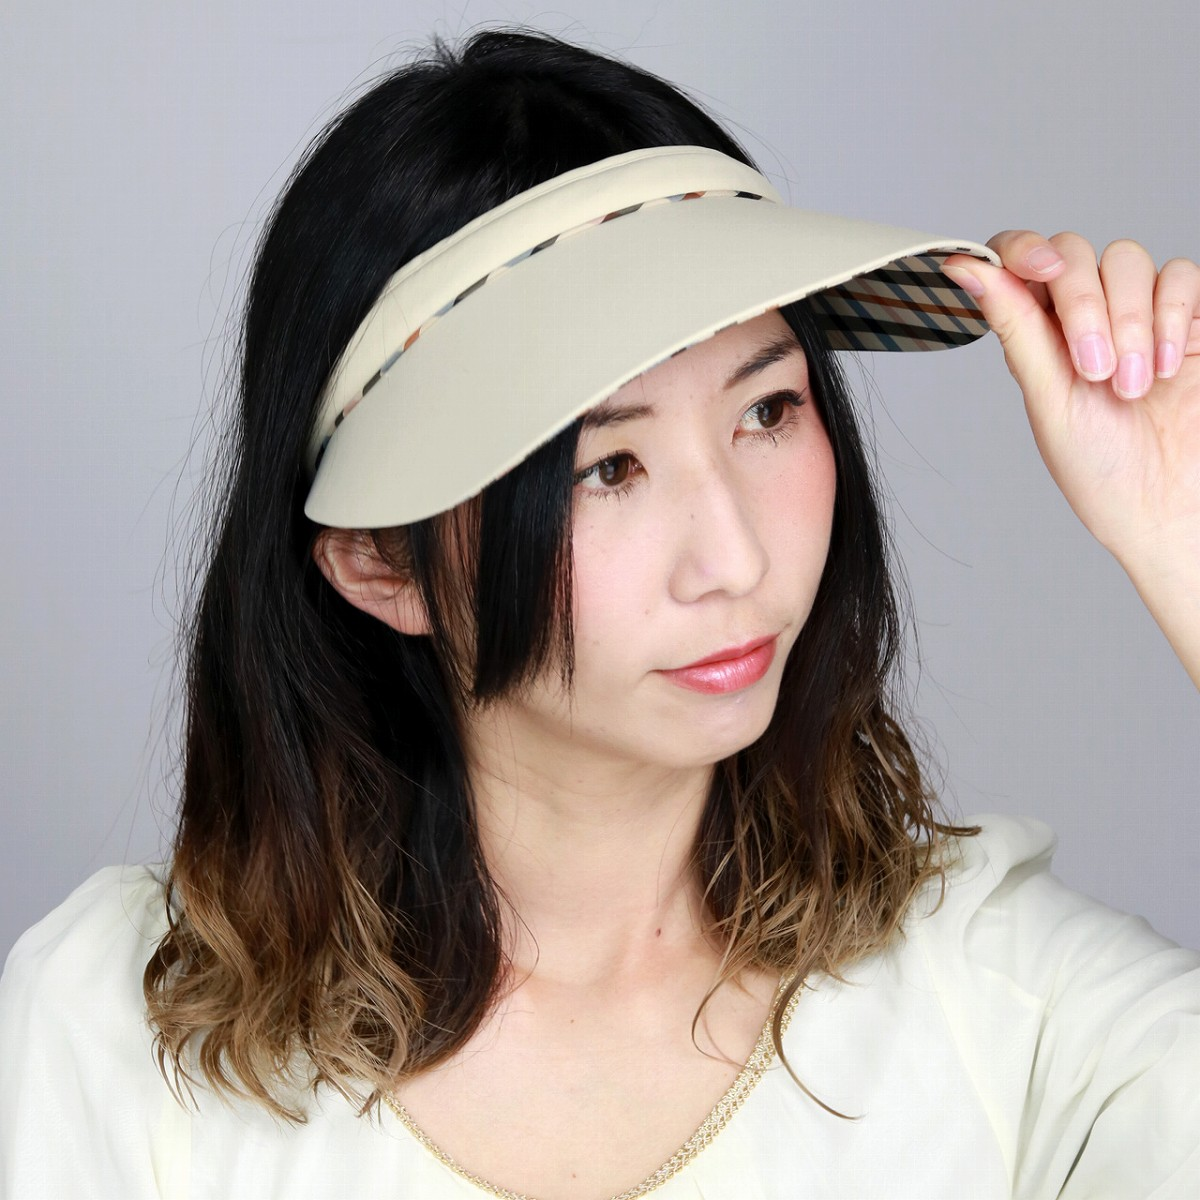 d6788d2e64a Ducks clip sun visor UV cut repellent water processing check visor Cap  ladies beige (Cap and hat shop fashion fashionable gift)